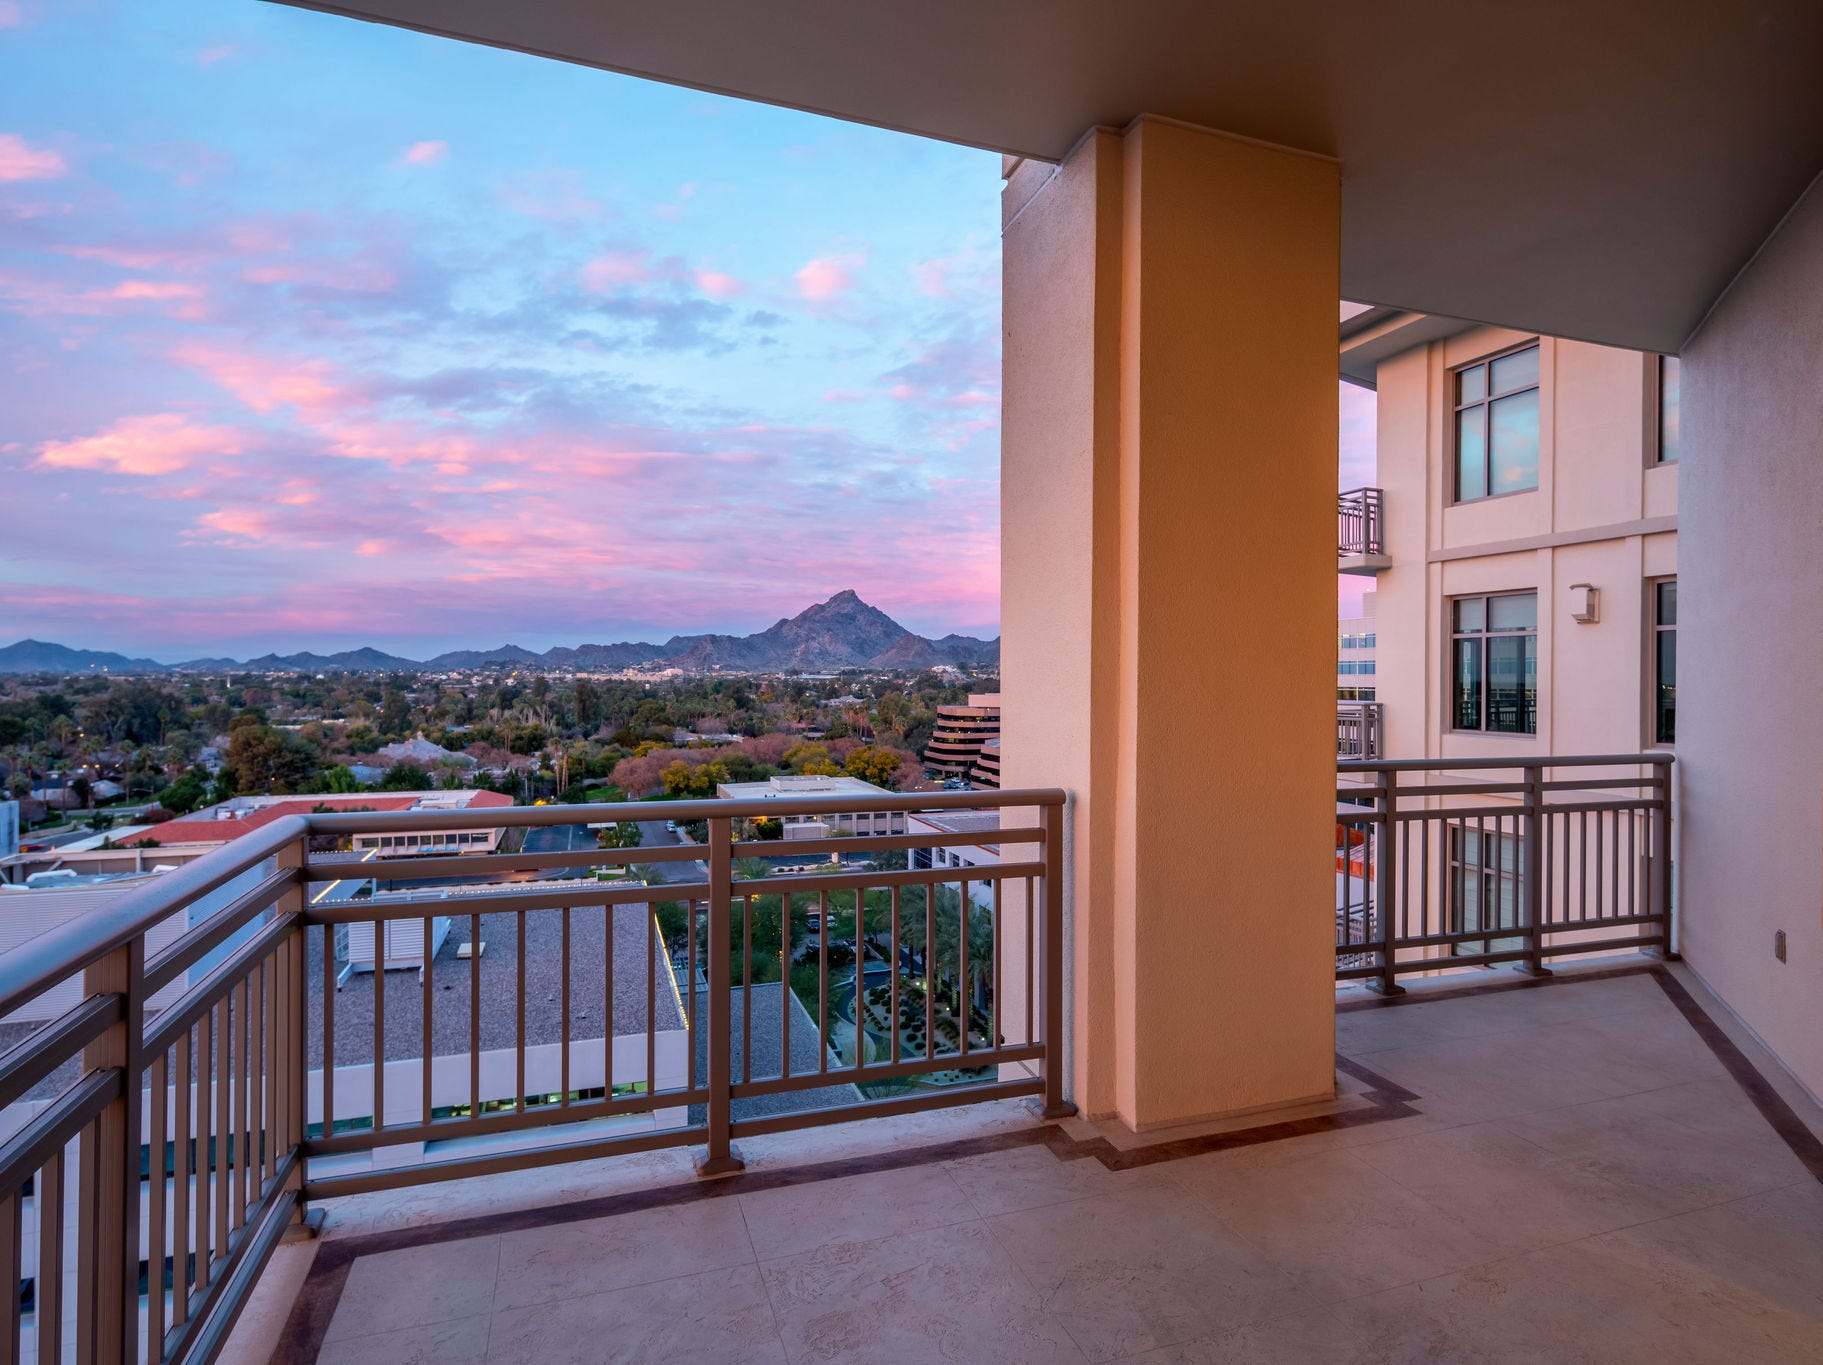 John and Cindy McCain moved into their 6,500-square-foot condo at 24th Street and Camelback Road in 2006. It has five bedrooms, 5 1/2 bathrooms, a dual-sided fireplace in the master suite, views from all directions and five parking spaces. The couple paid $4.6 million for the then-new condo, according to real estate records.